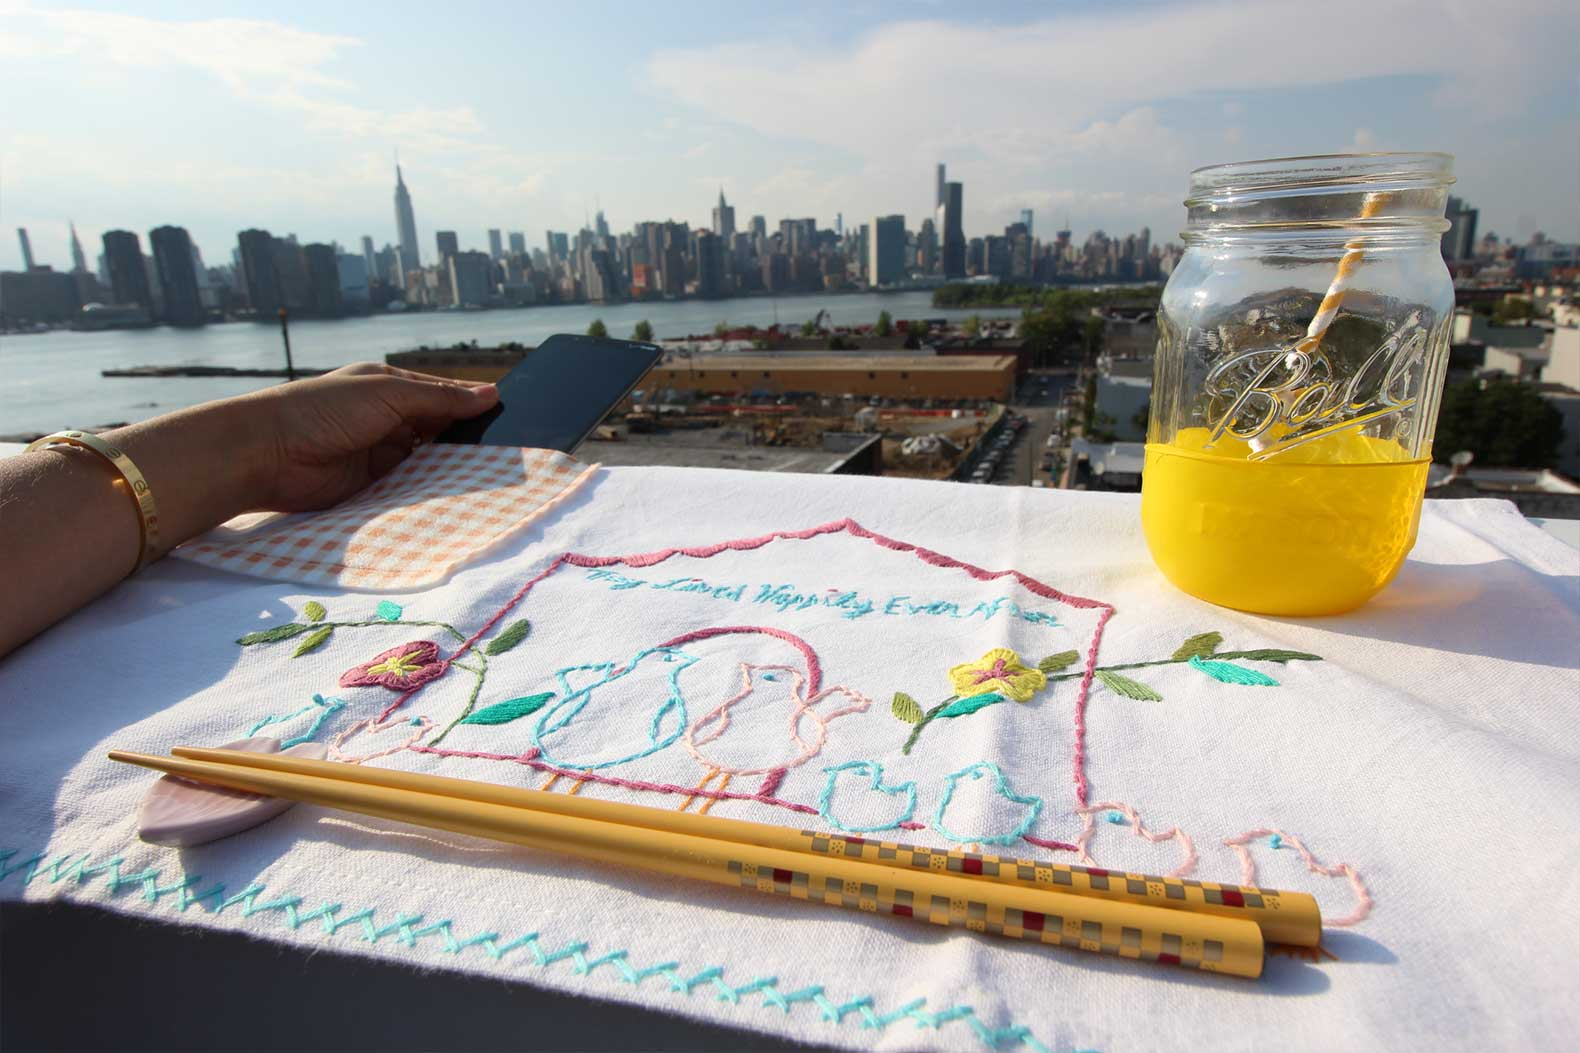 DIY Pocket Placemat with City View